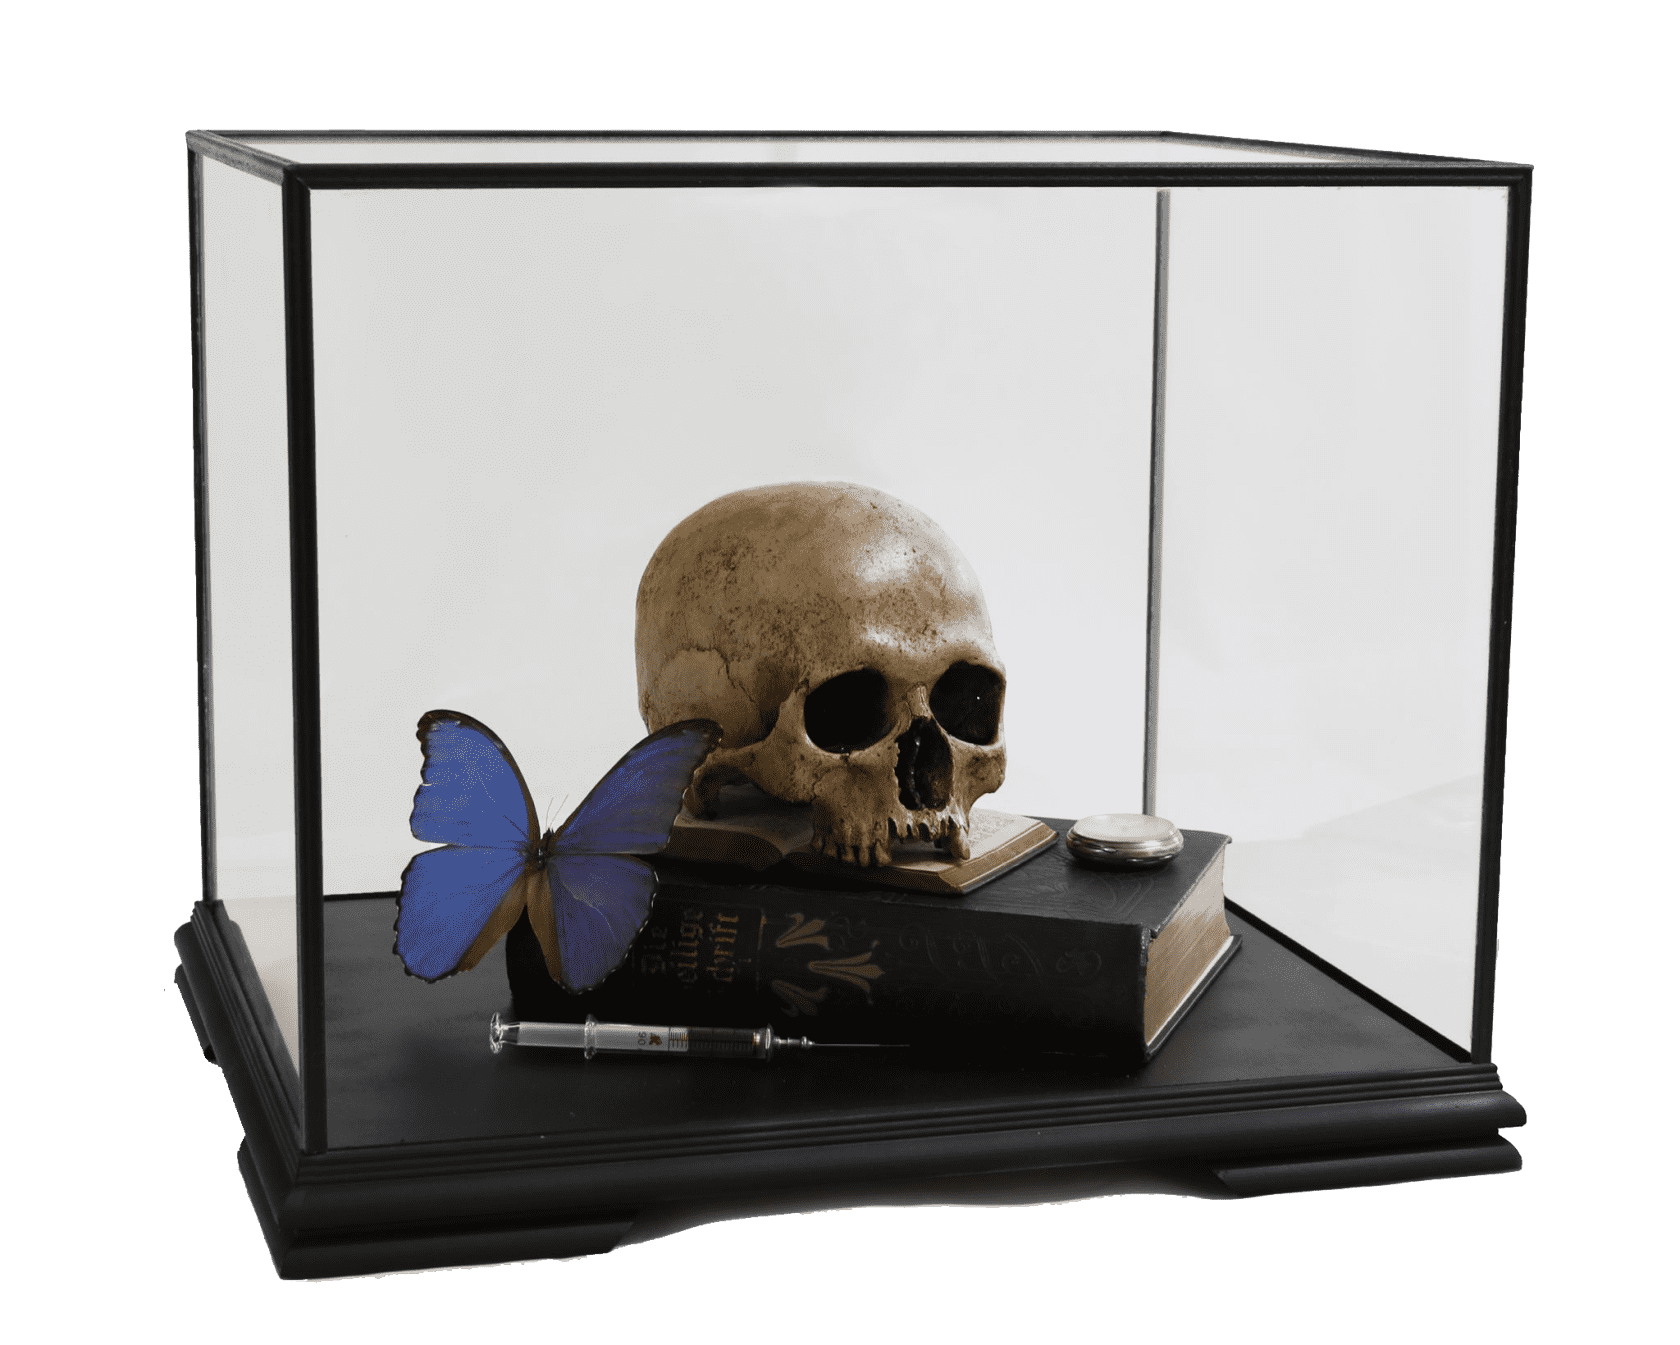 the connor brothers Memento Mori with Heilige Schrift and Morpho Didius Cast human skull, 19th Century books, antique syringe and...